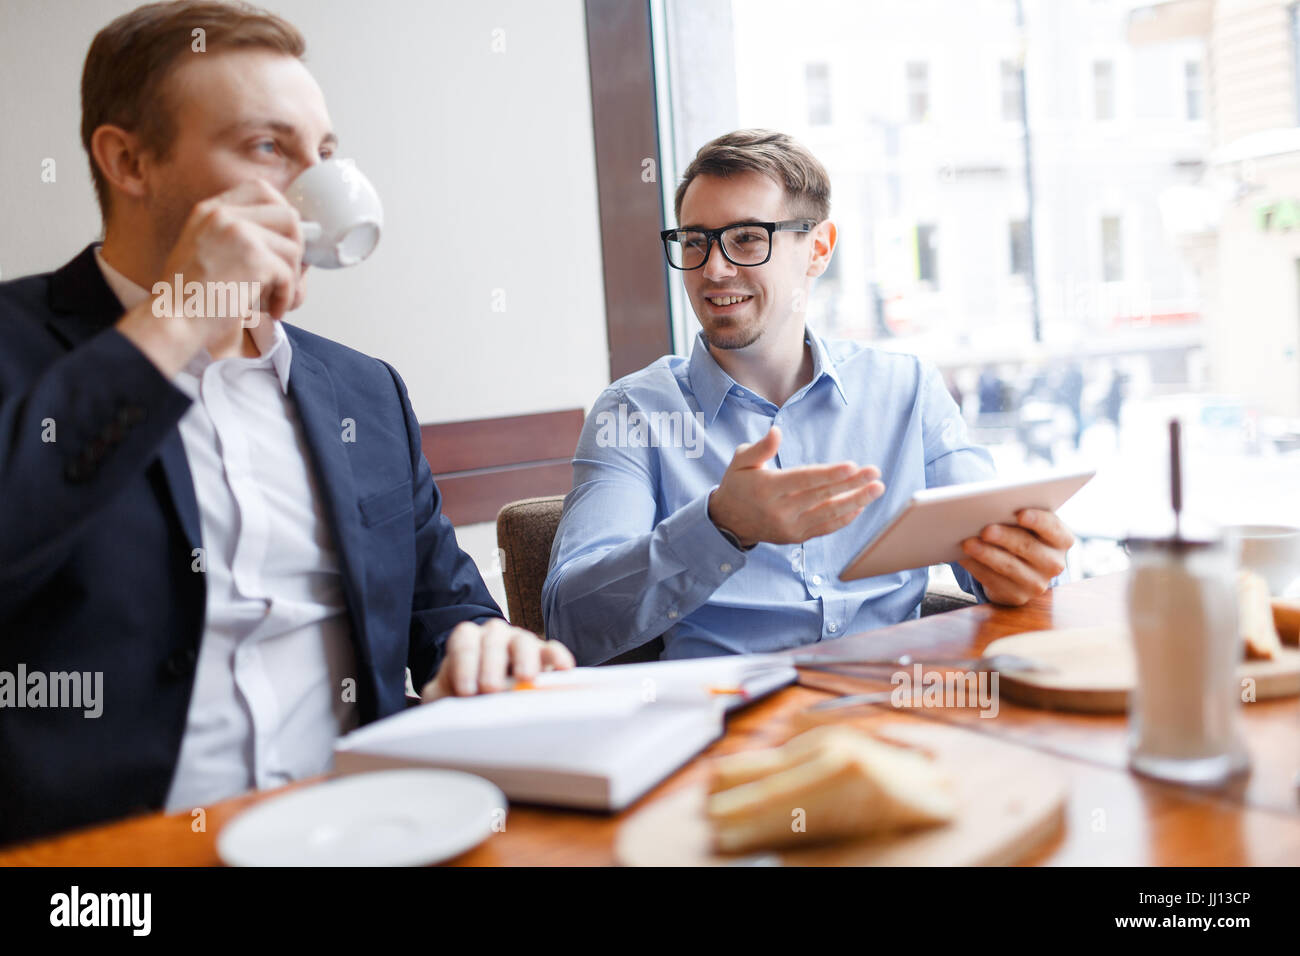 Talking by lunch - Stock Image